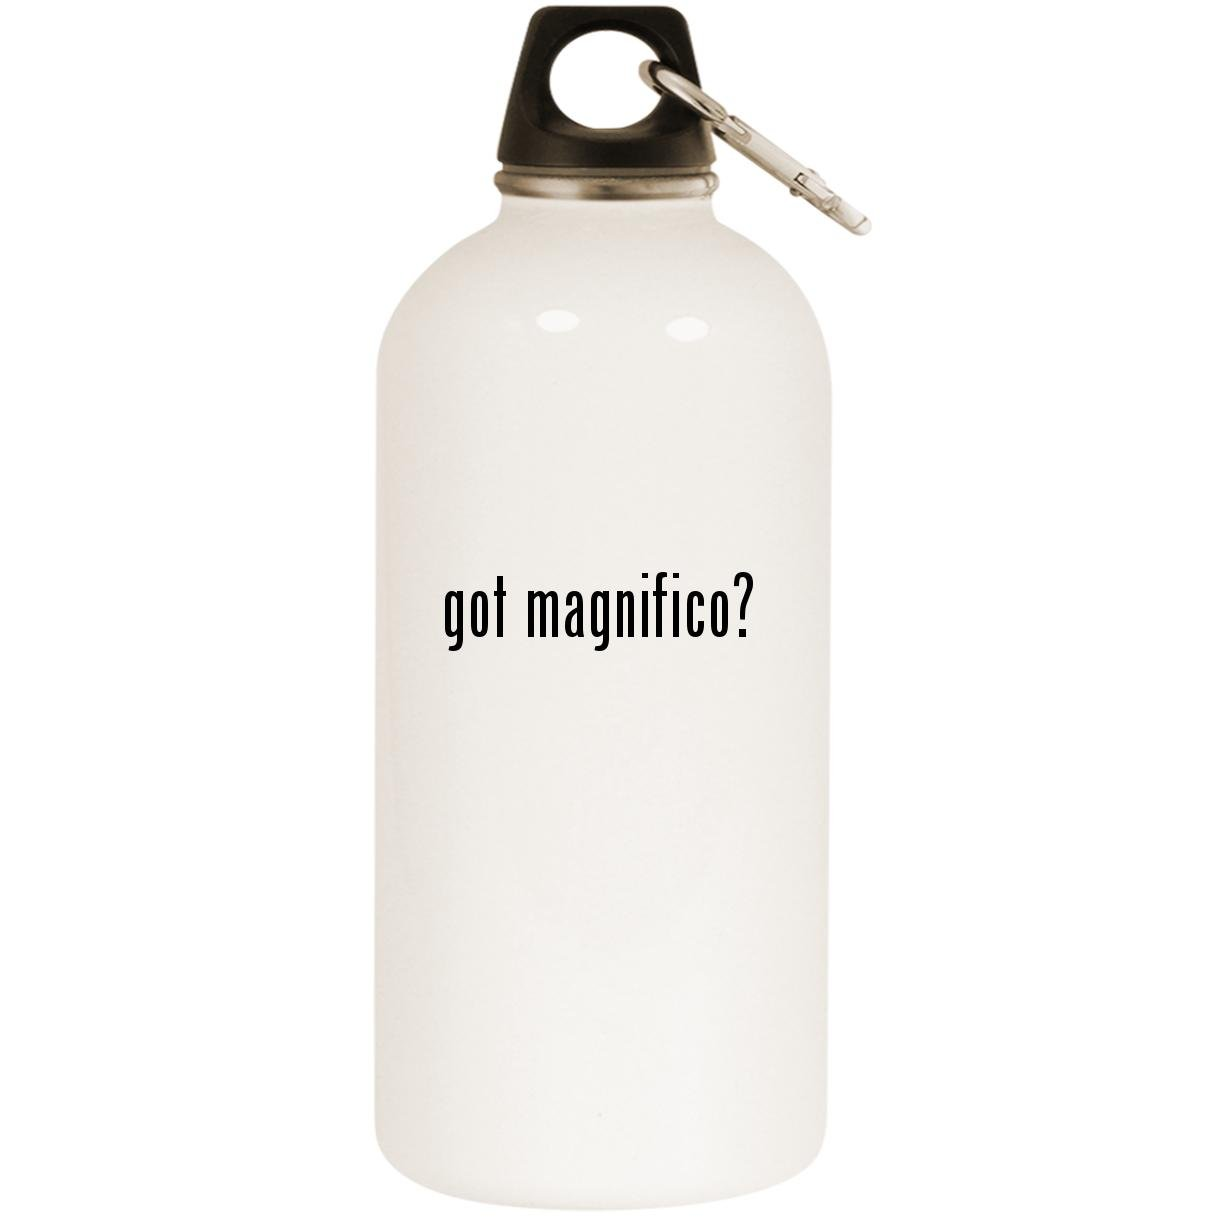 Molandra Products got Magnifico? - White 20oz Stainless Steel Water Bottle with Carabiner